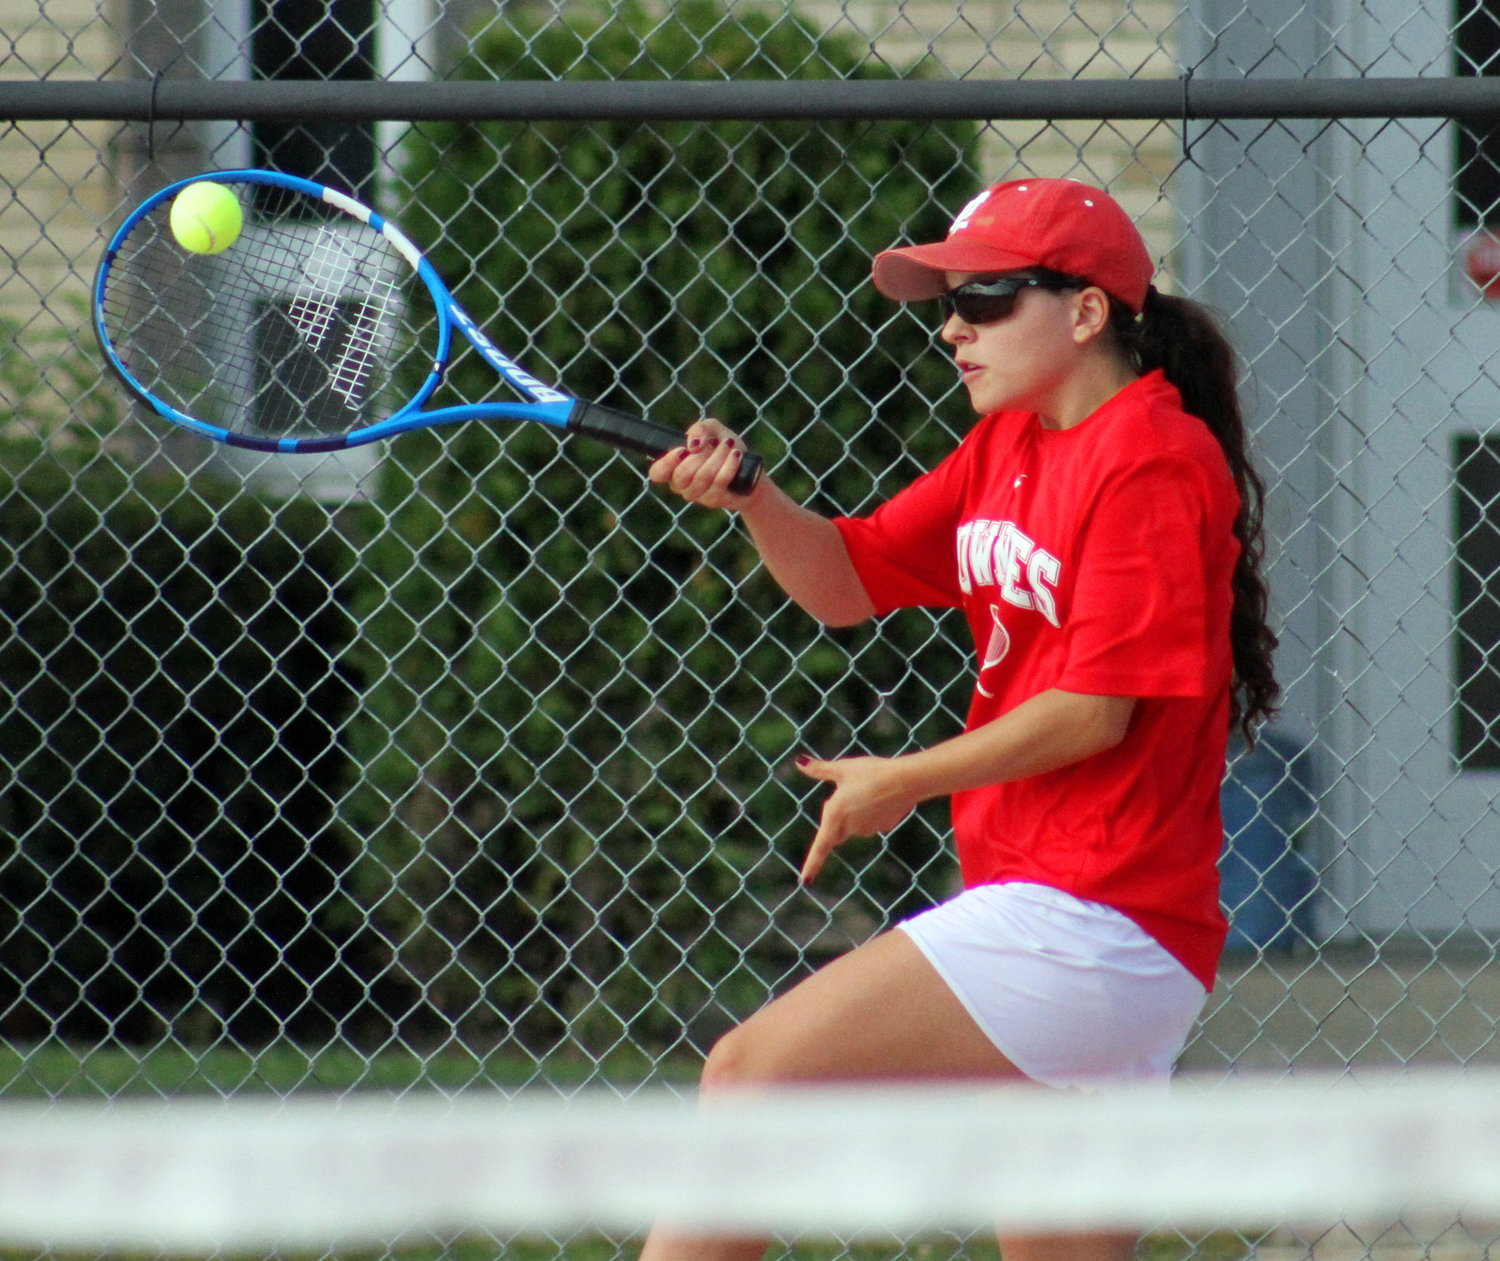 East Providence High School's Christina-Marie Capobianco hits a forehand during her singles match against Narraganset on September 26.